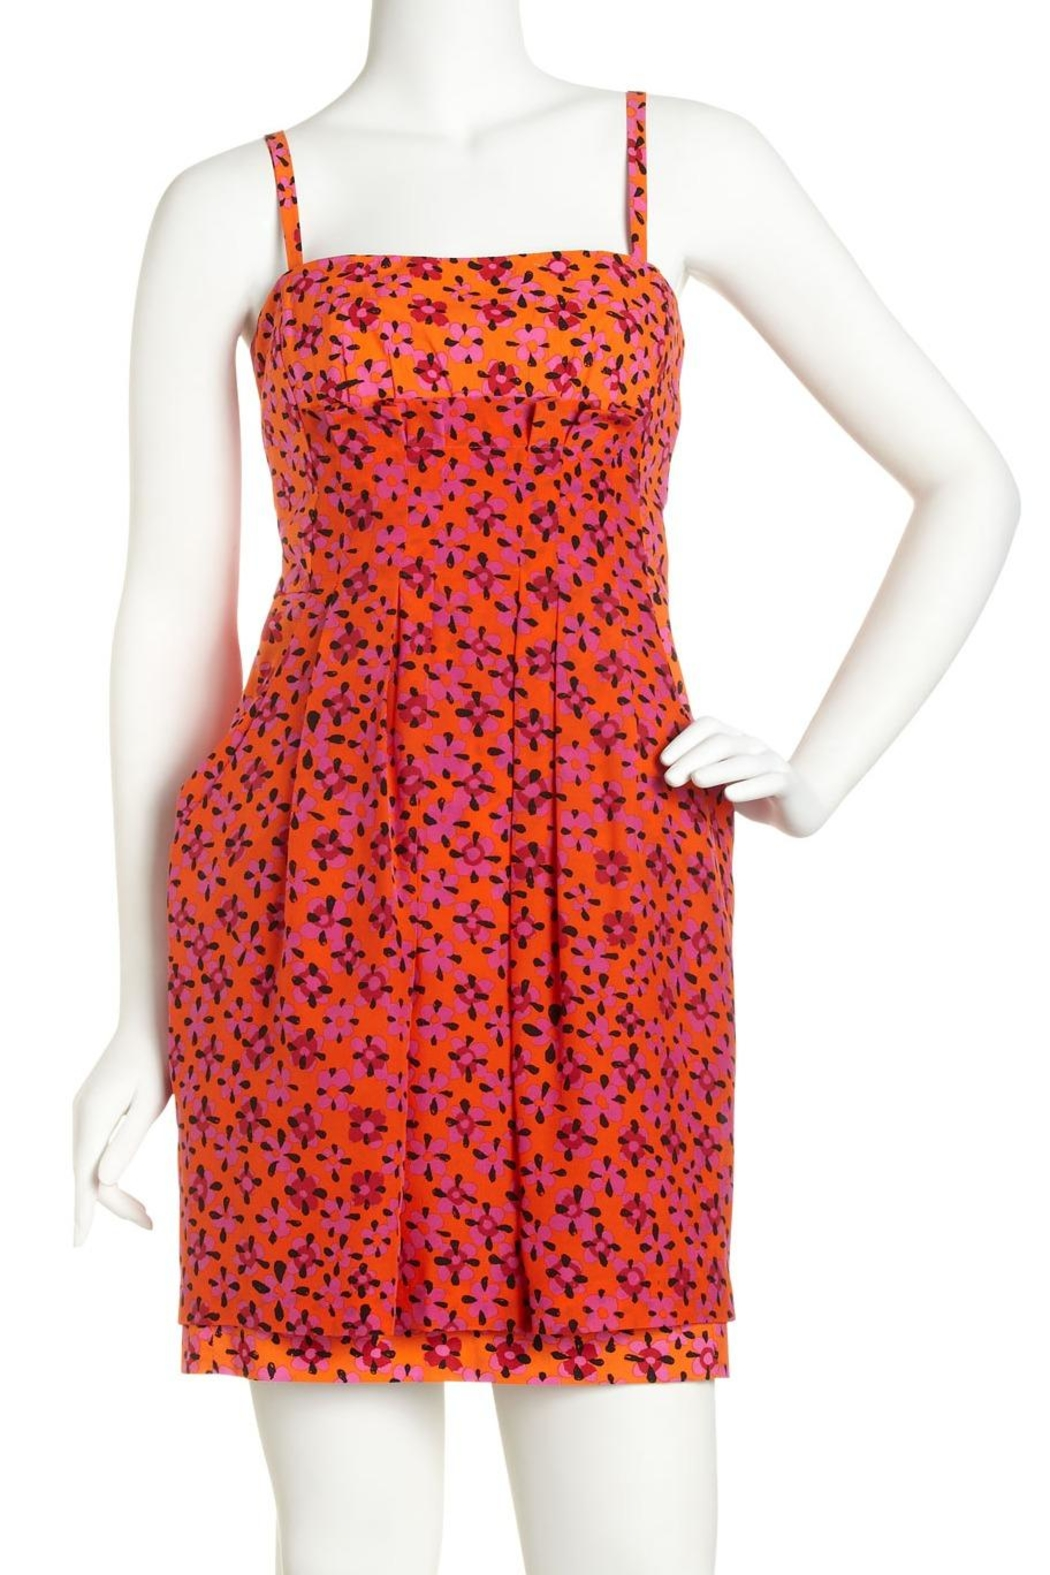 Nanette Lepore Lotus Blossom Dress - Front Cropped Image